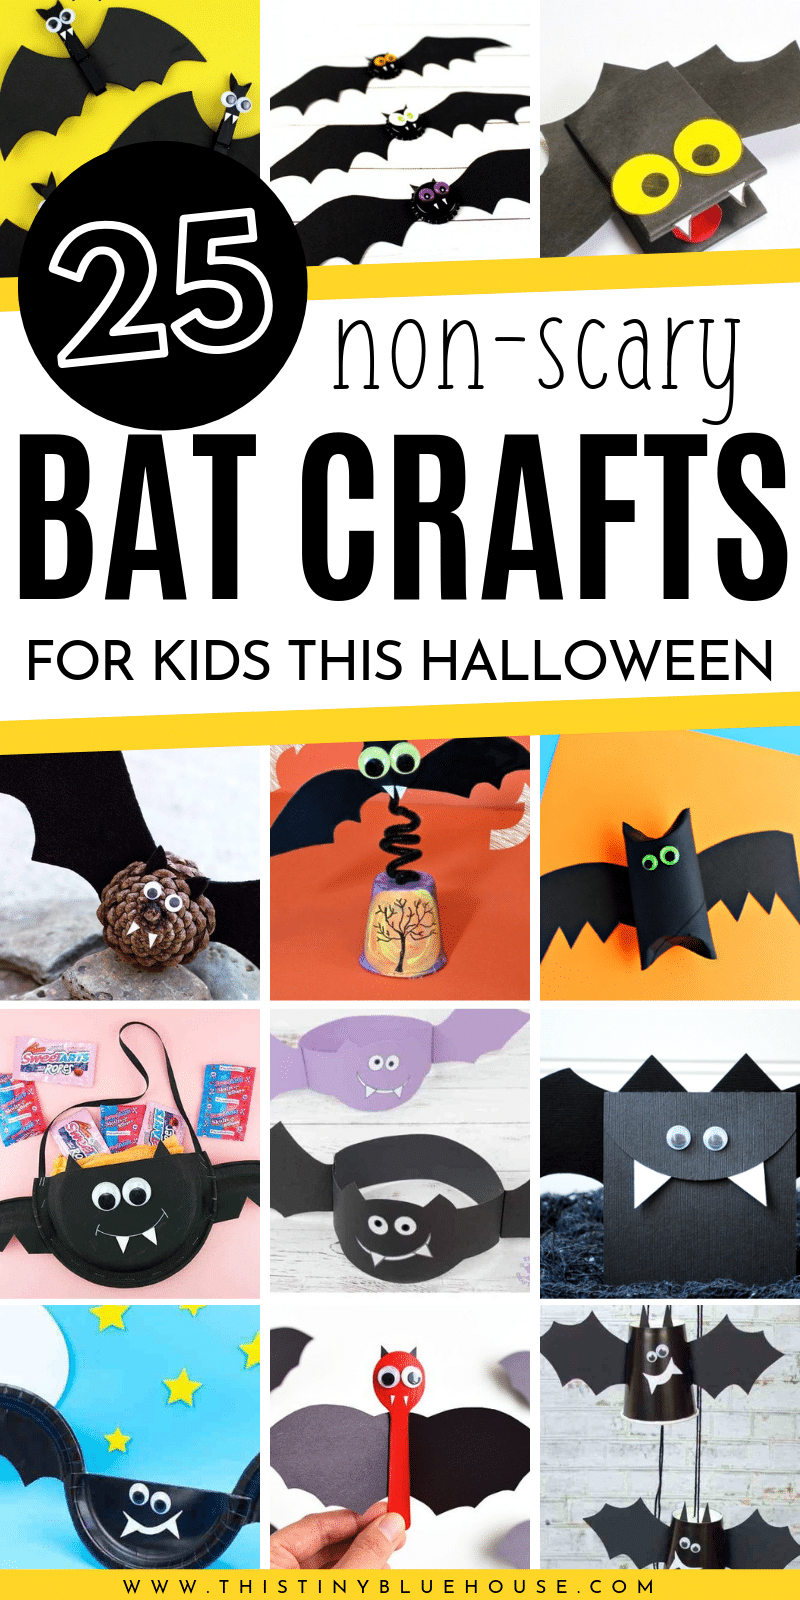 here are over 20 adorable fun bat crafts that'll help kiddos get super excited for Halloween. Easy and non scary these bat crafts for Halloween are guaranteed to provide hours of fun. #HalloweenCraftsForKids #HalloweenBatCrafts #BestHalloweenCrafts #EasyHalloweenCraftsForKids #NonScaryHalloweenCrafts #BatCrafts